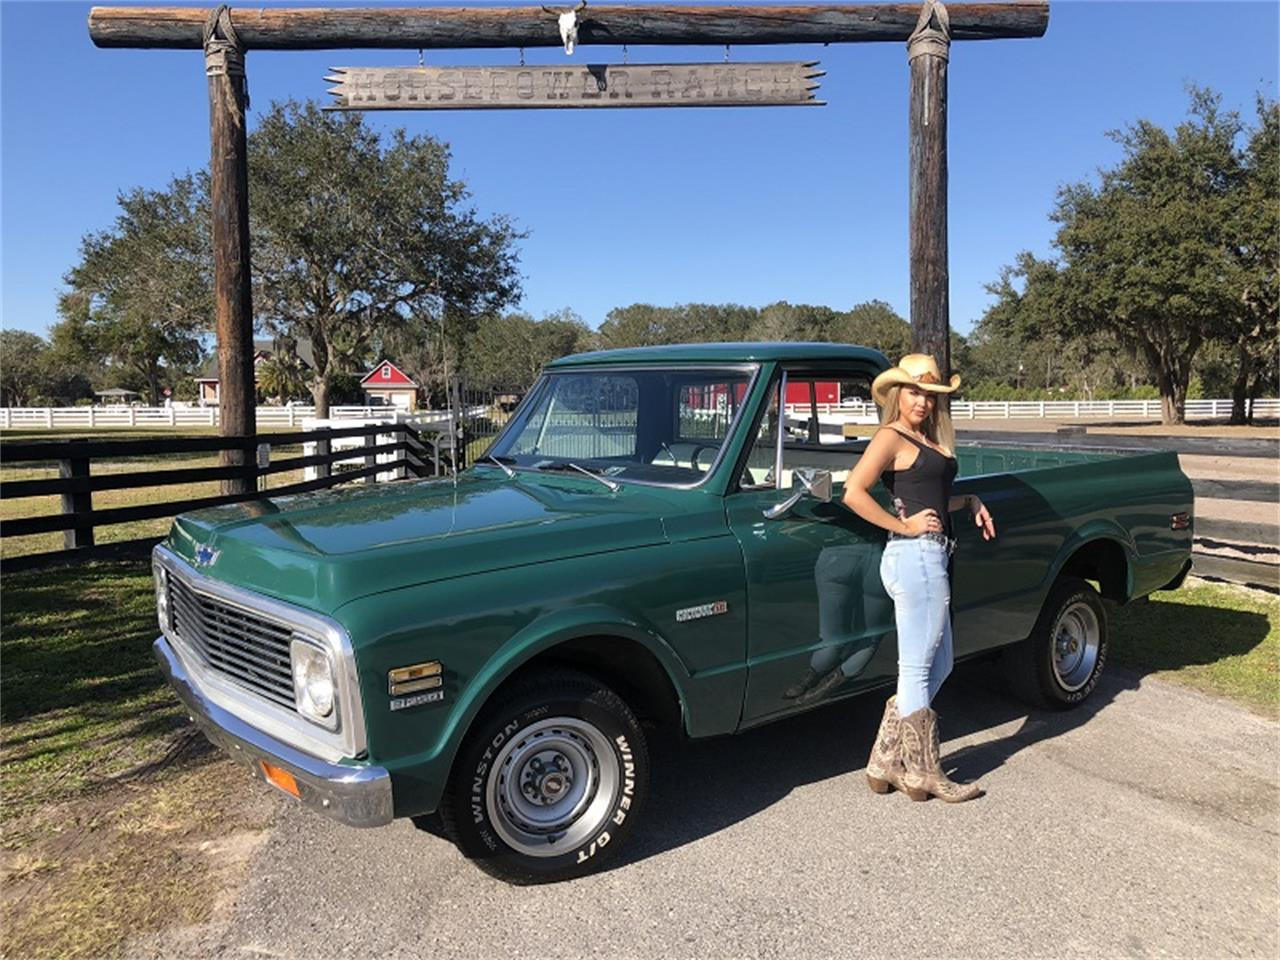 Large Picture of '72 Chevrolet Cheyenne located in Oviedo Florida - $15,500.00 - MR92